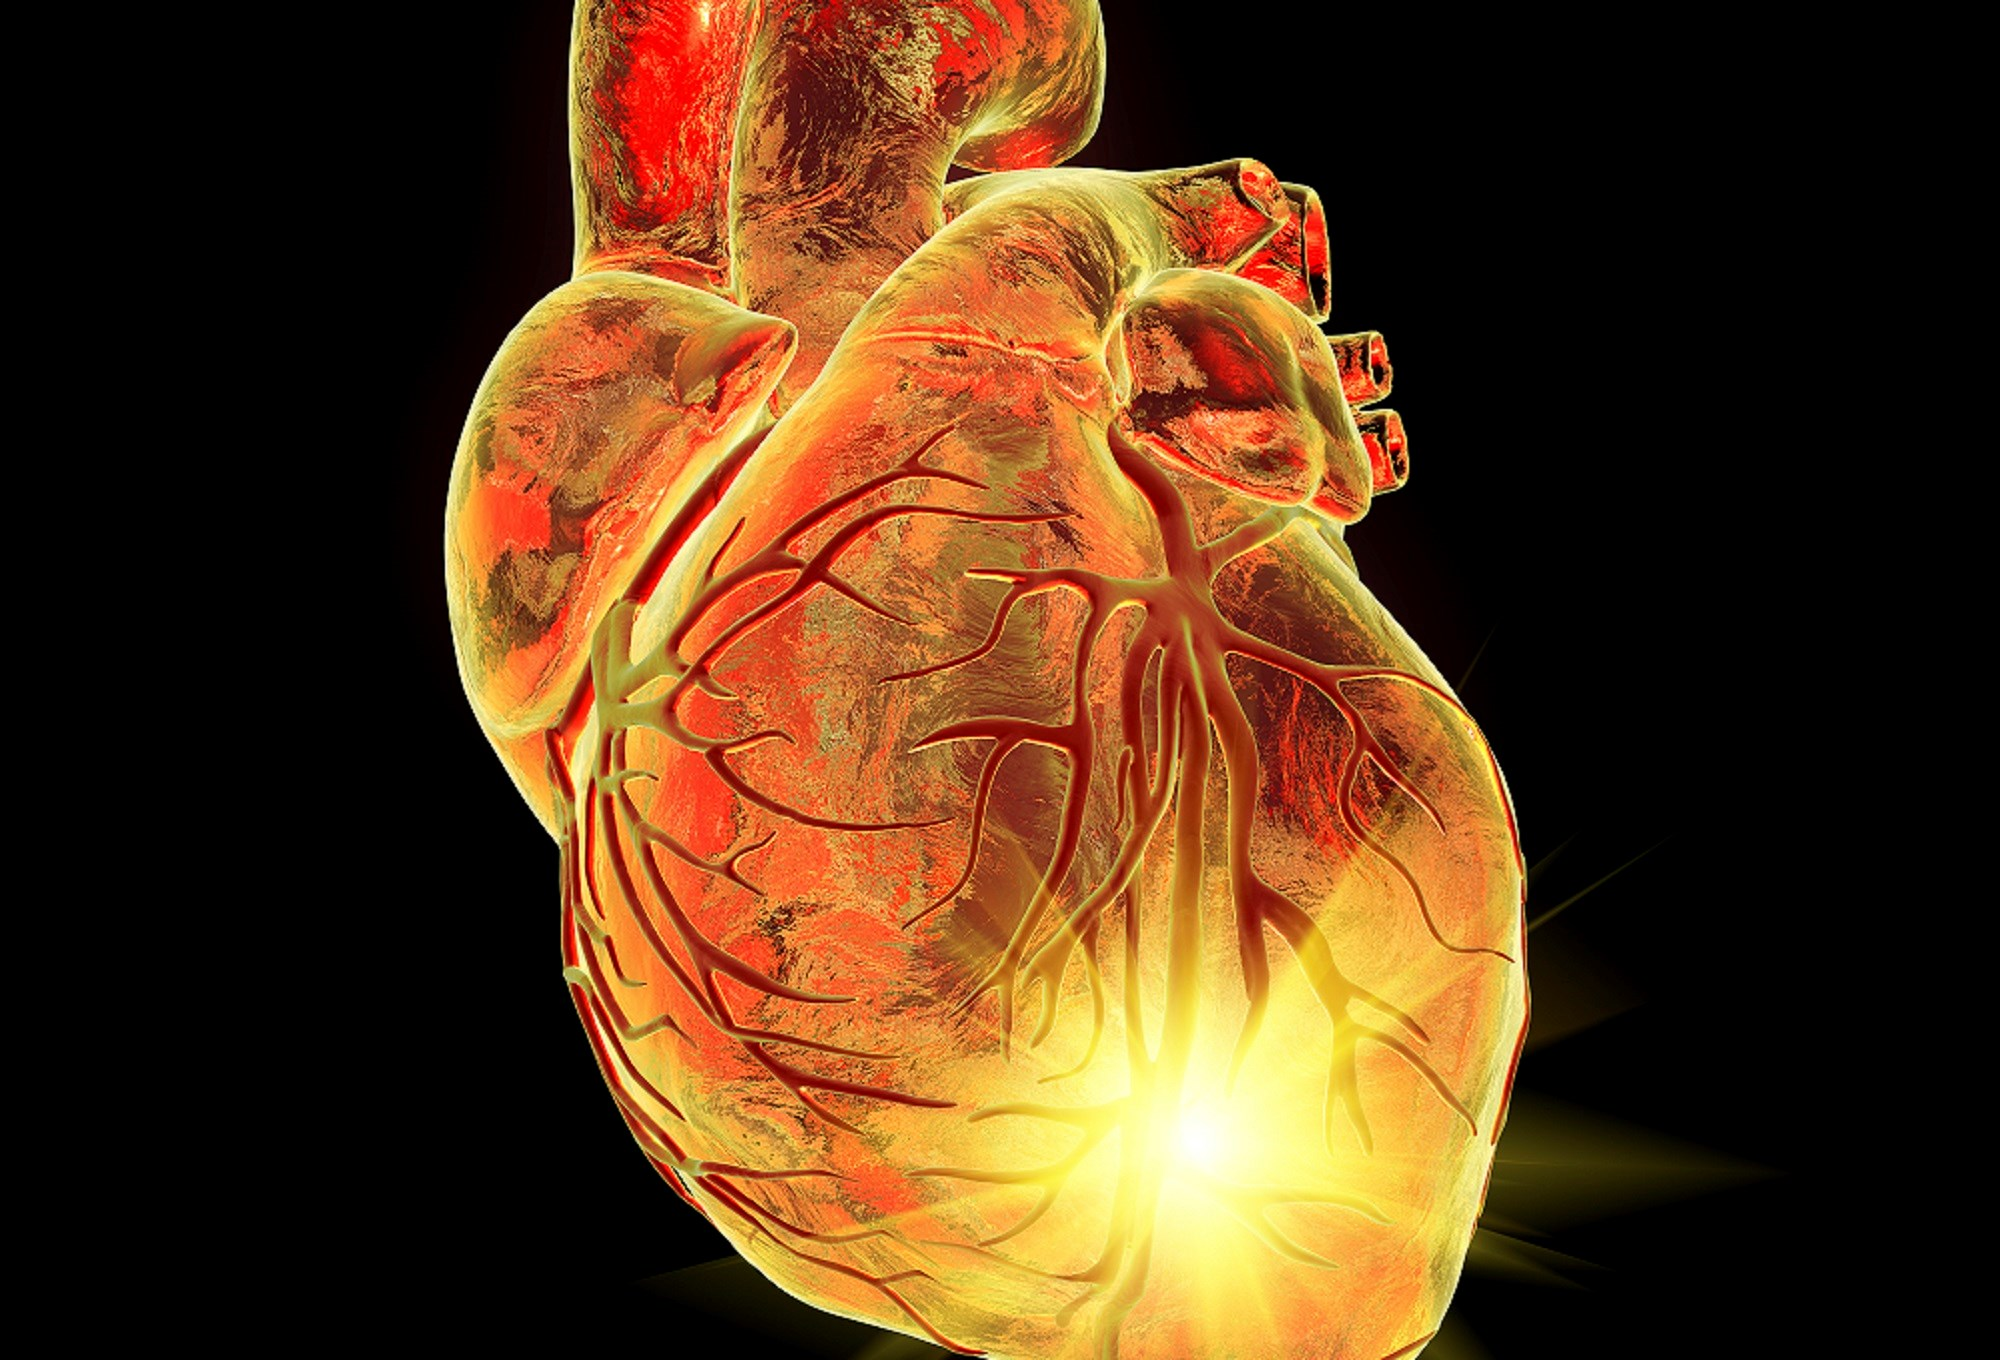 Subclinical Myocardial Inflammation Common in Rheumatoid Arthritis